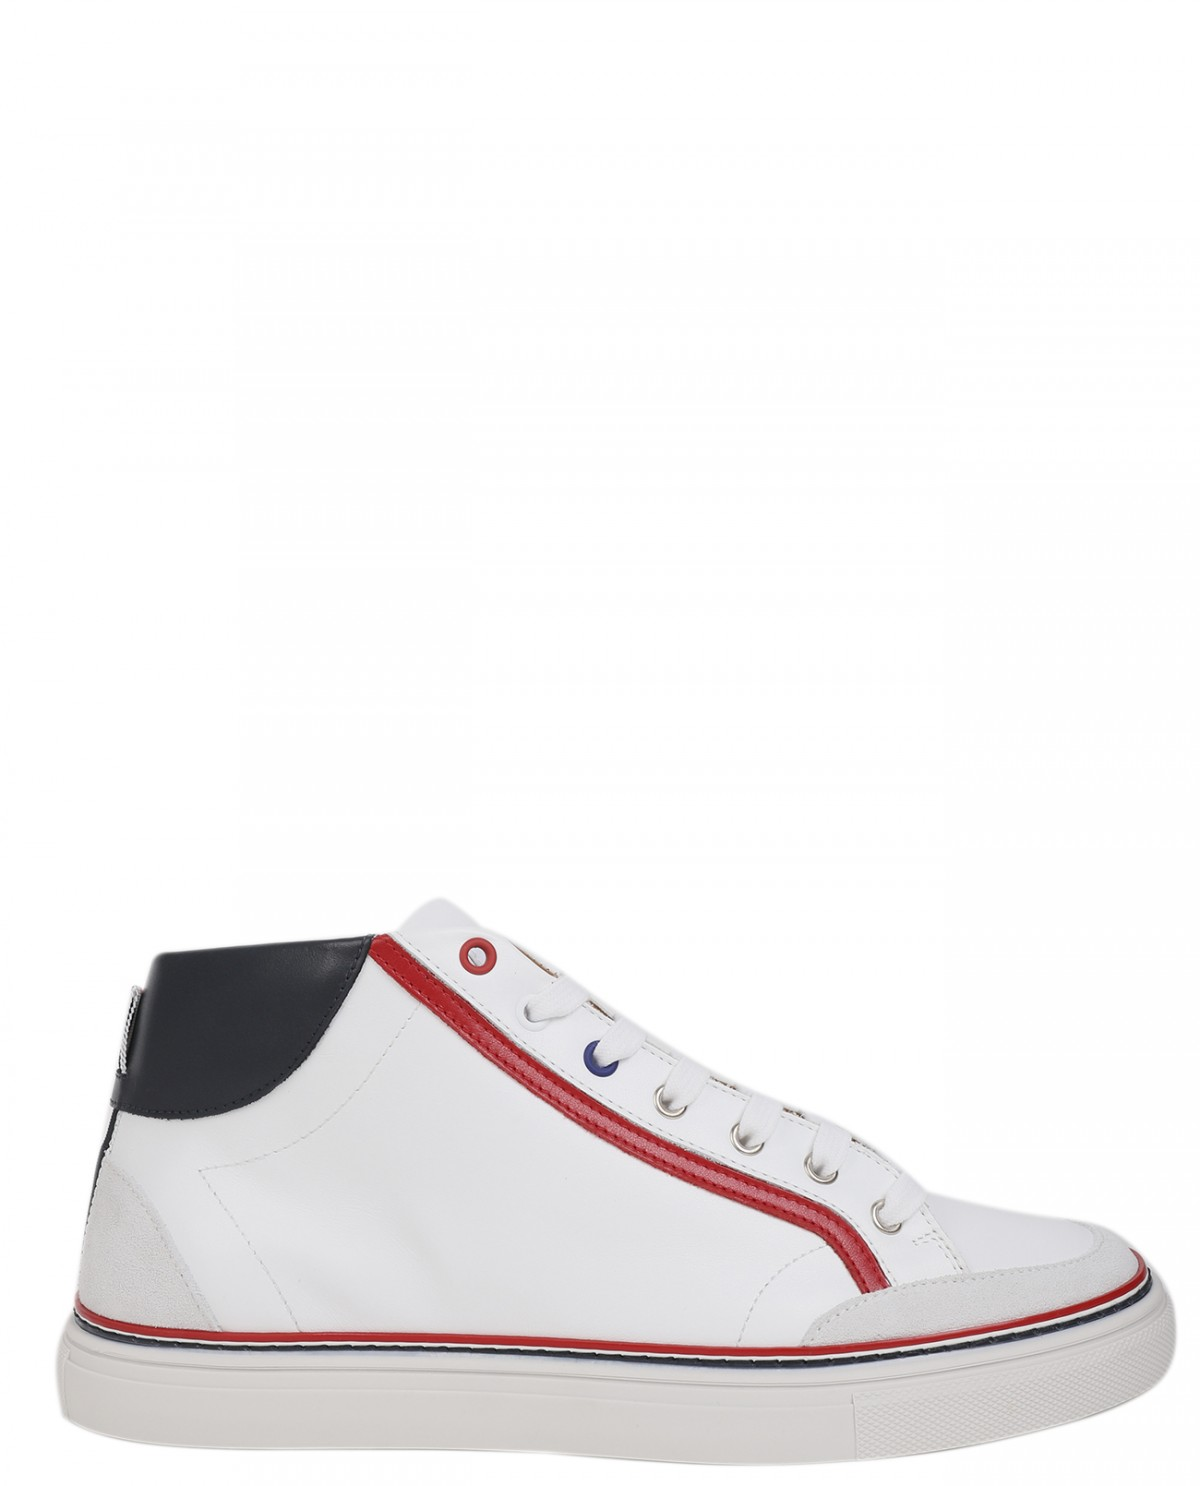 Thom Browne white sneakers